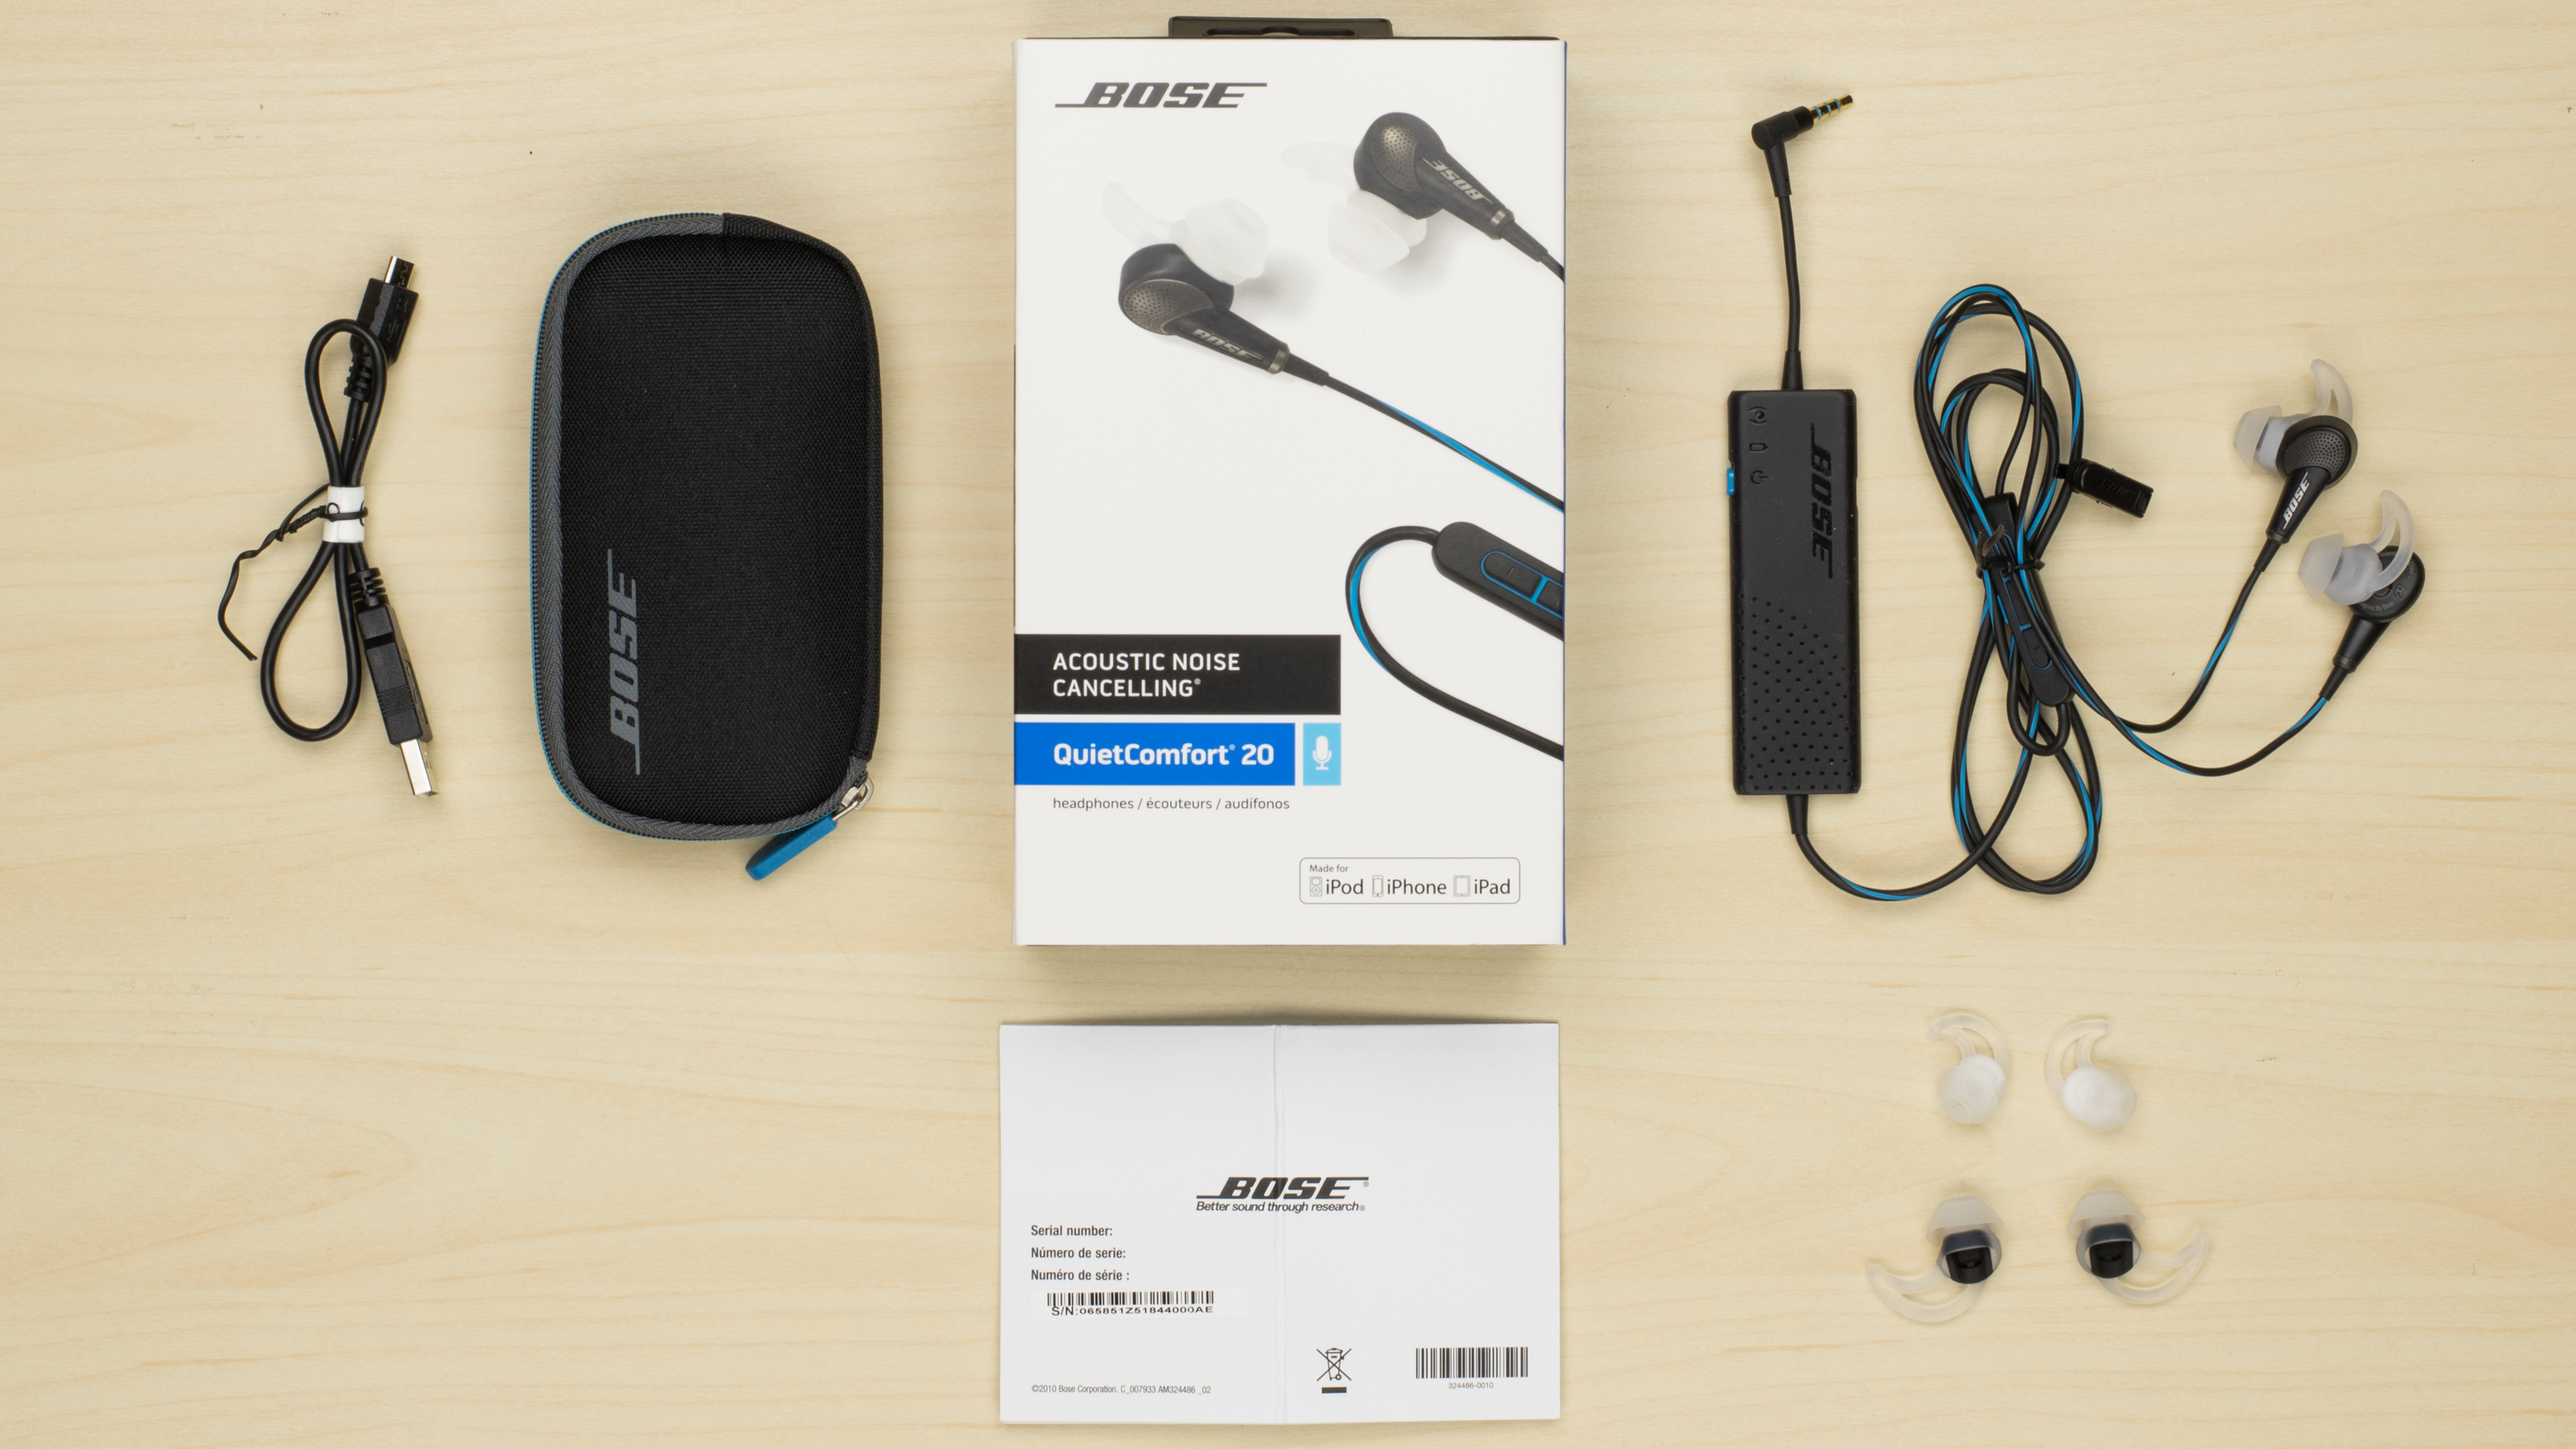 Bose qc20 earbuds - bose earbuds noise cancelling case